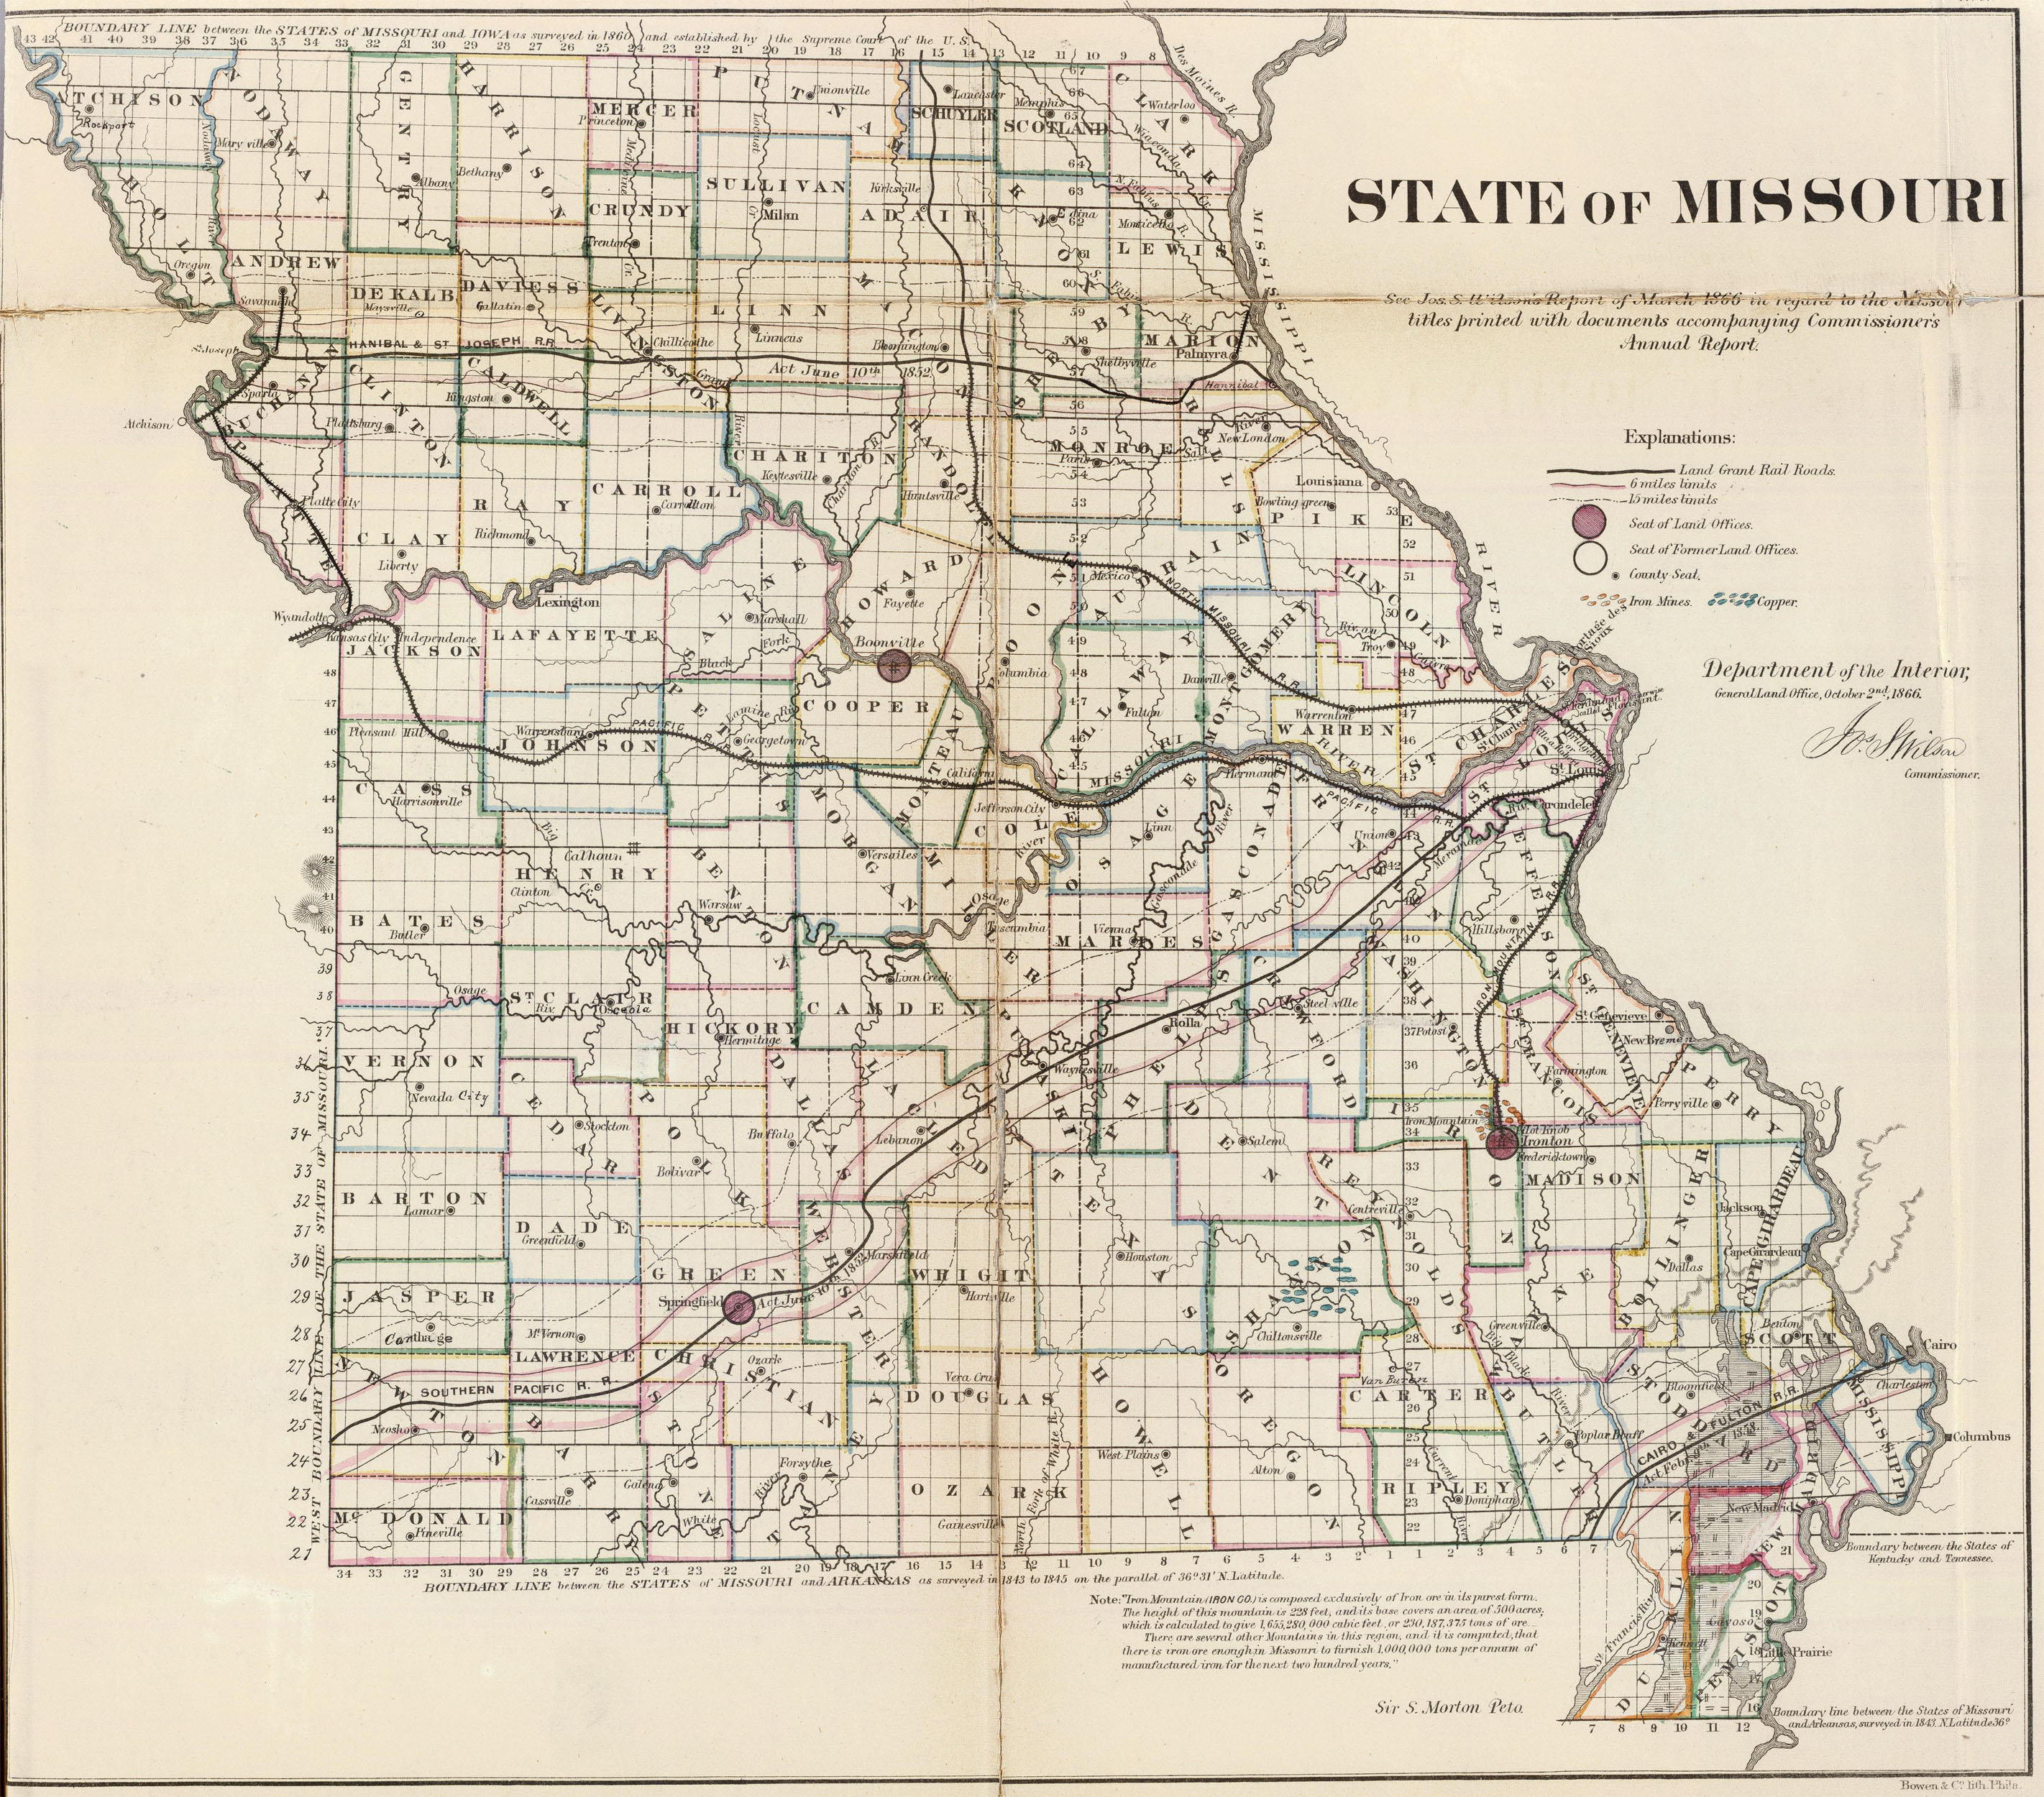 Old Historical City, County and State Maps of Missouri on large map of oklahoma and cities, oklahoma state university map, ok map, large oklahoma county map, grove okla map, tulsa area map, large oklahoma state outline, stillwater oklahoma state map, okla state map, state of oklahoma state map, state of iowa by county map, texas map, pennsylvania lakes and rivers map, oklahoma state parks map, full oklahoma state map, united states map, custom oklahoma state map, large california map, oklahoma state county map, map tulsa oklahoma state map,